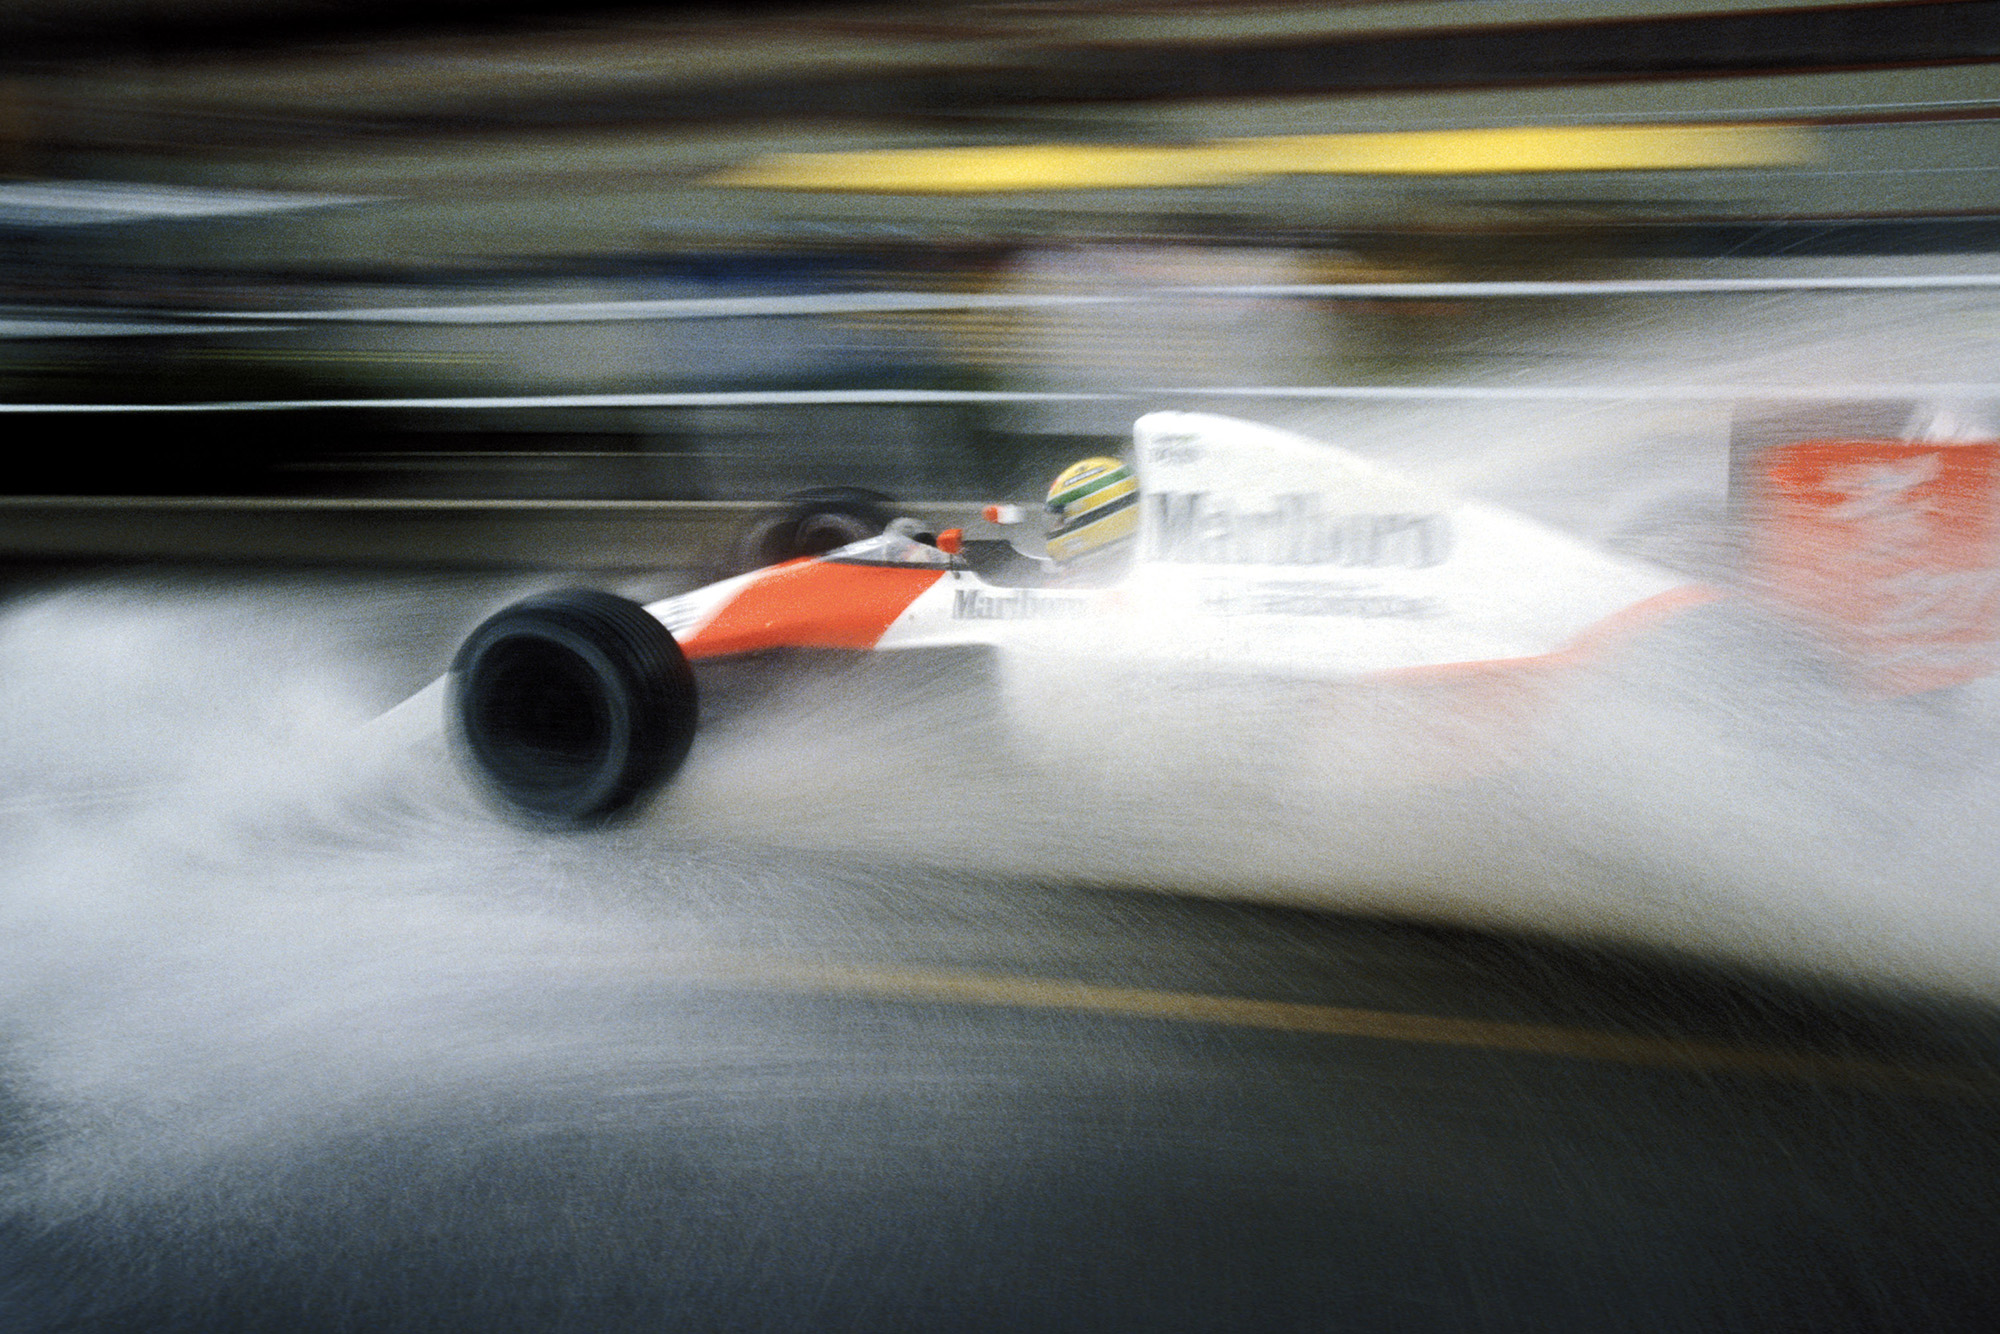 Ayrton Senna in the rain at the 1990 US Grand Prix in Phoenix